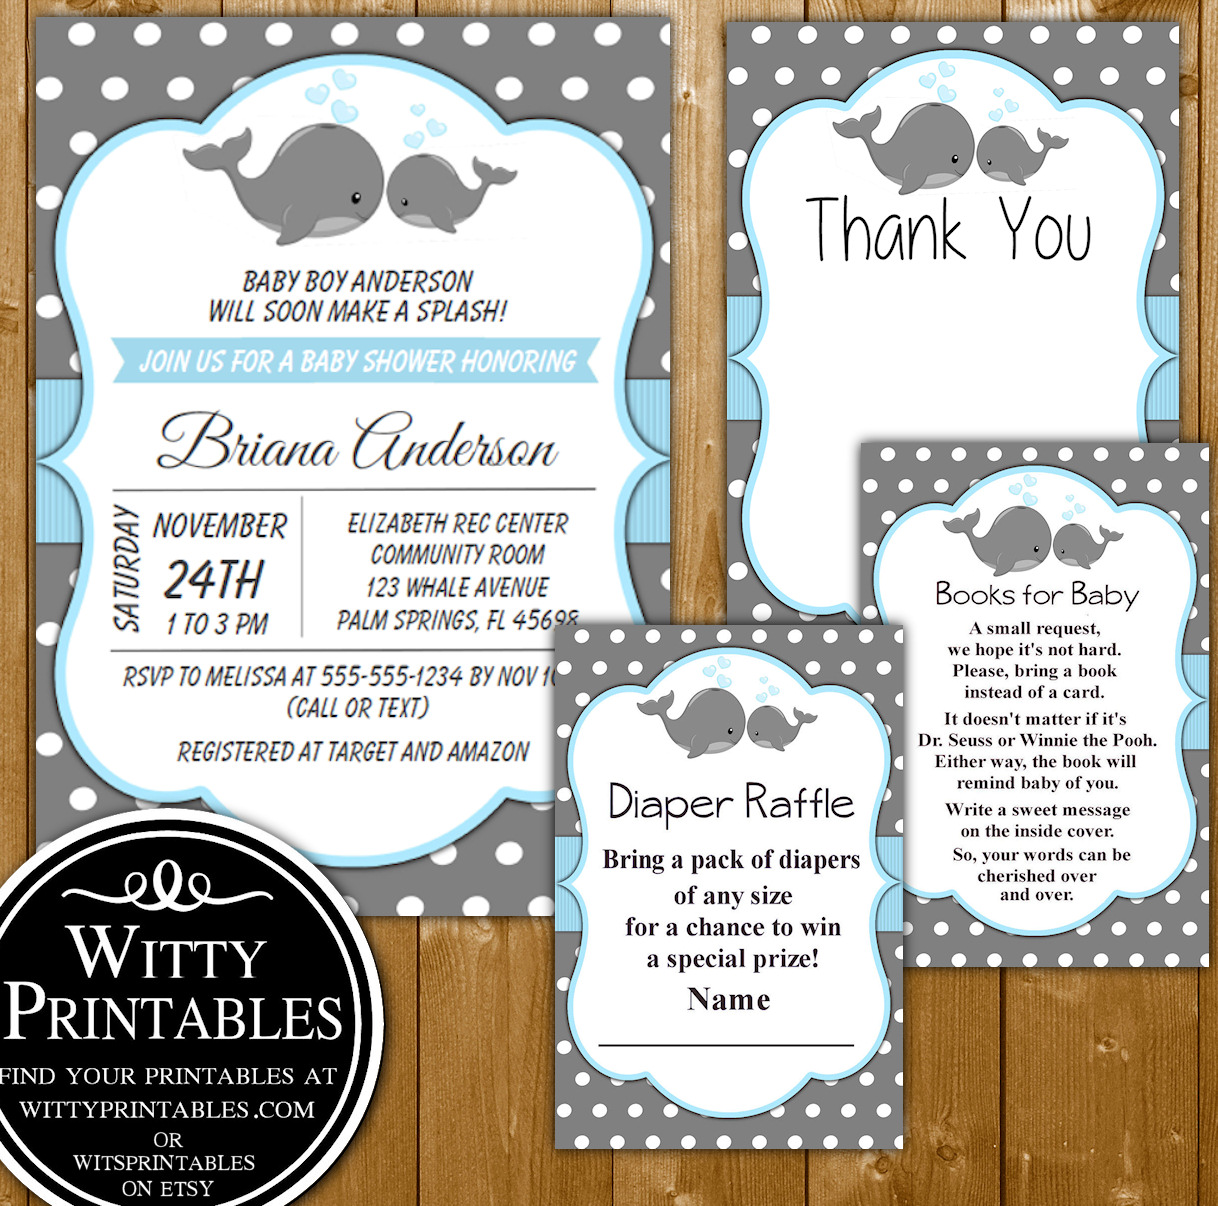 Baby Shower Invitation Set Blue Whales For A Boy Baby Invitation Books For Baby Diaper Raffle And Thank You Set Wittyprintables